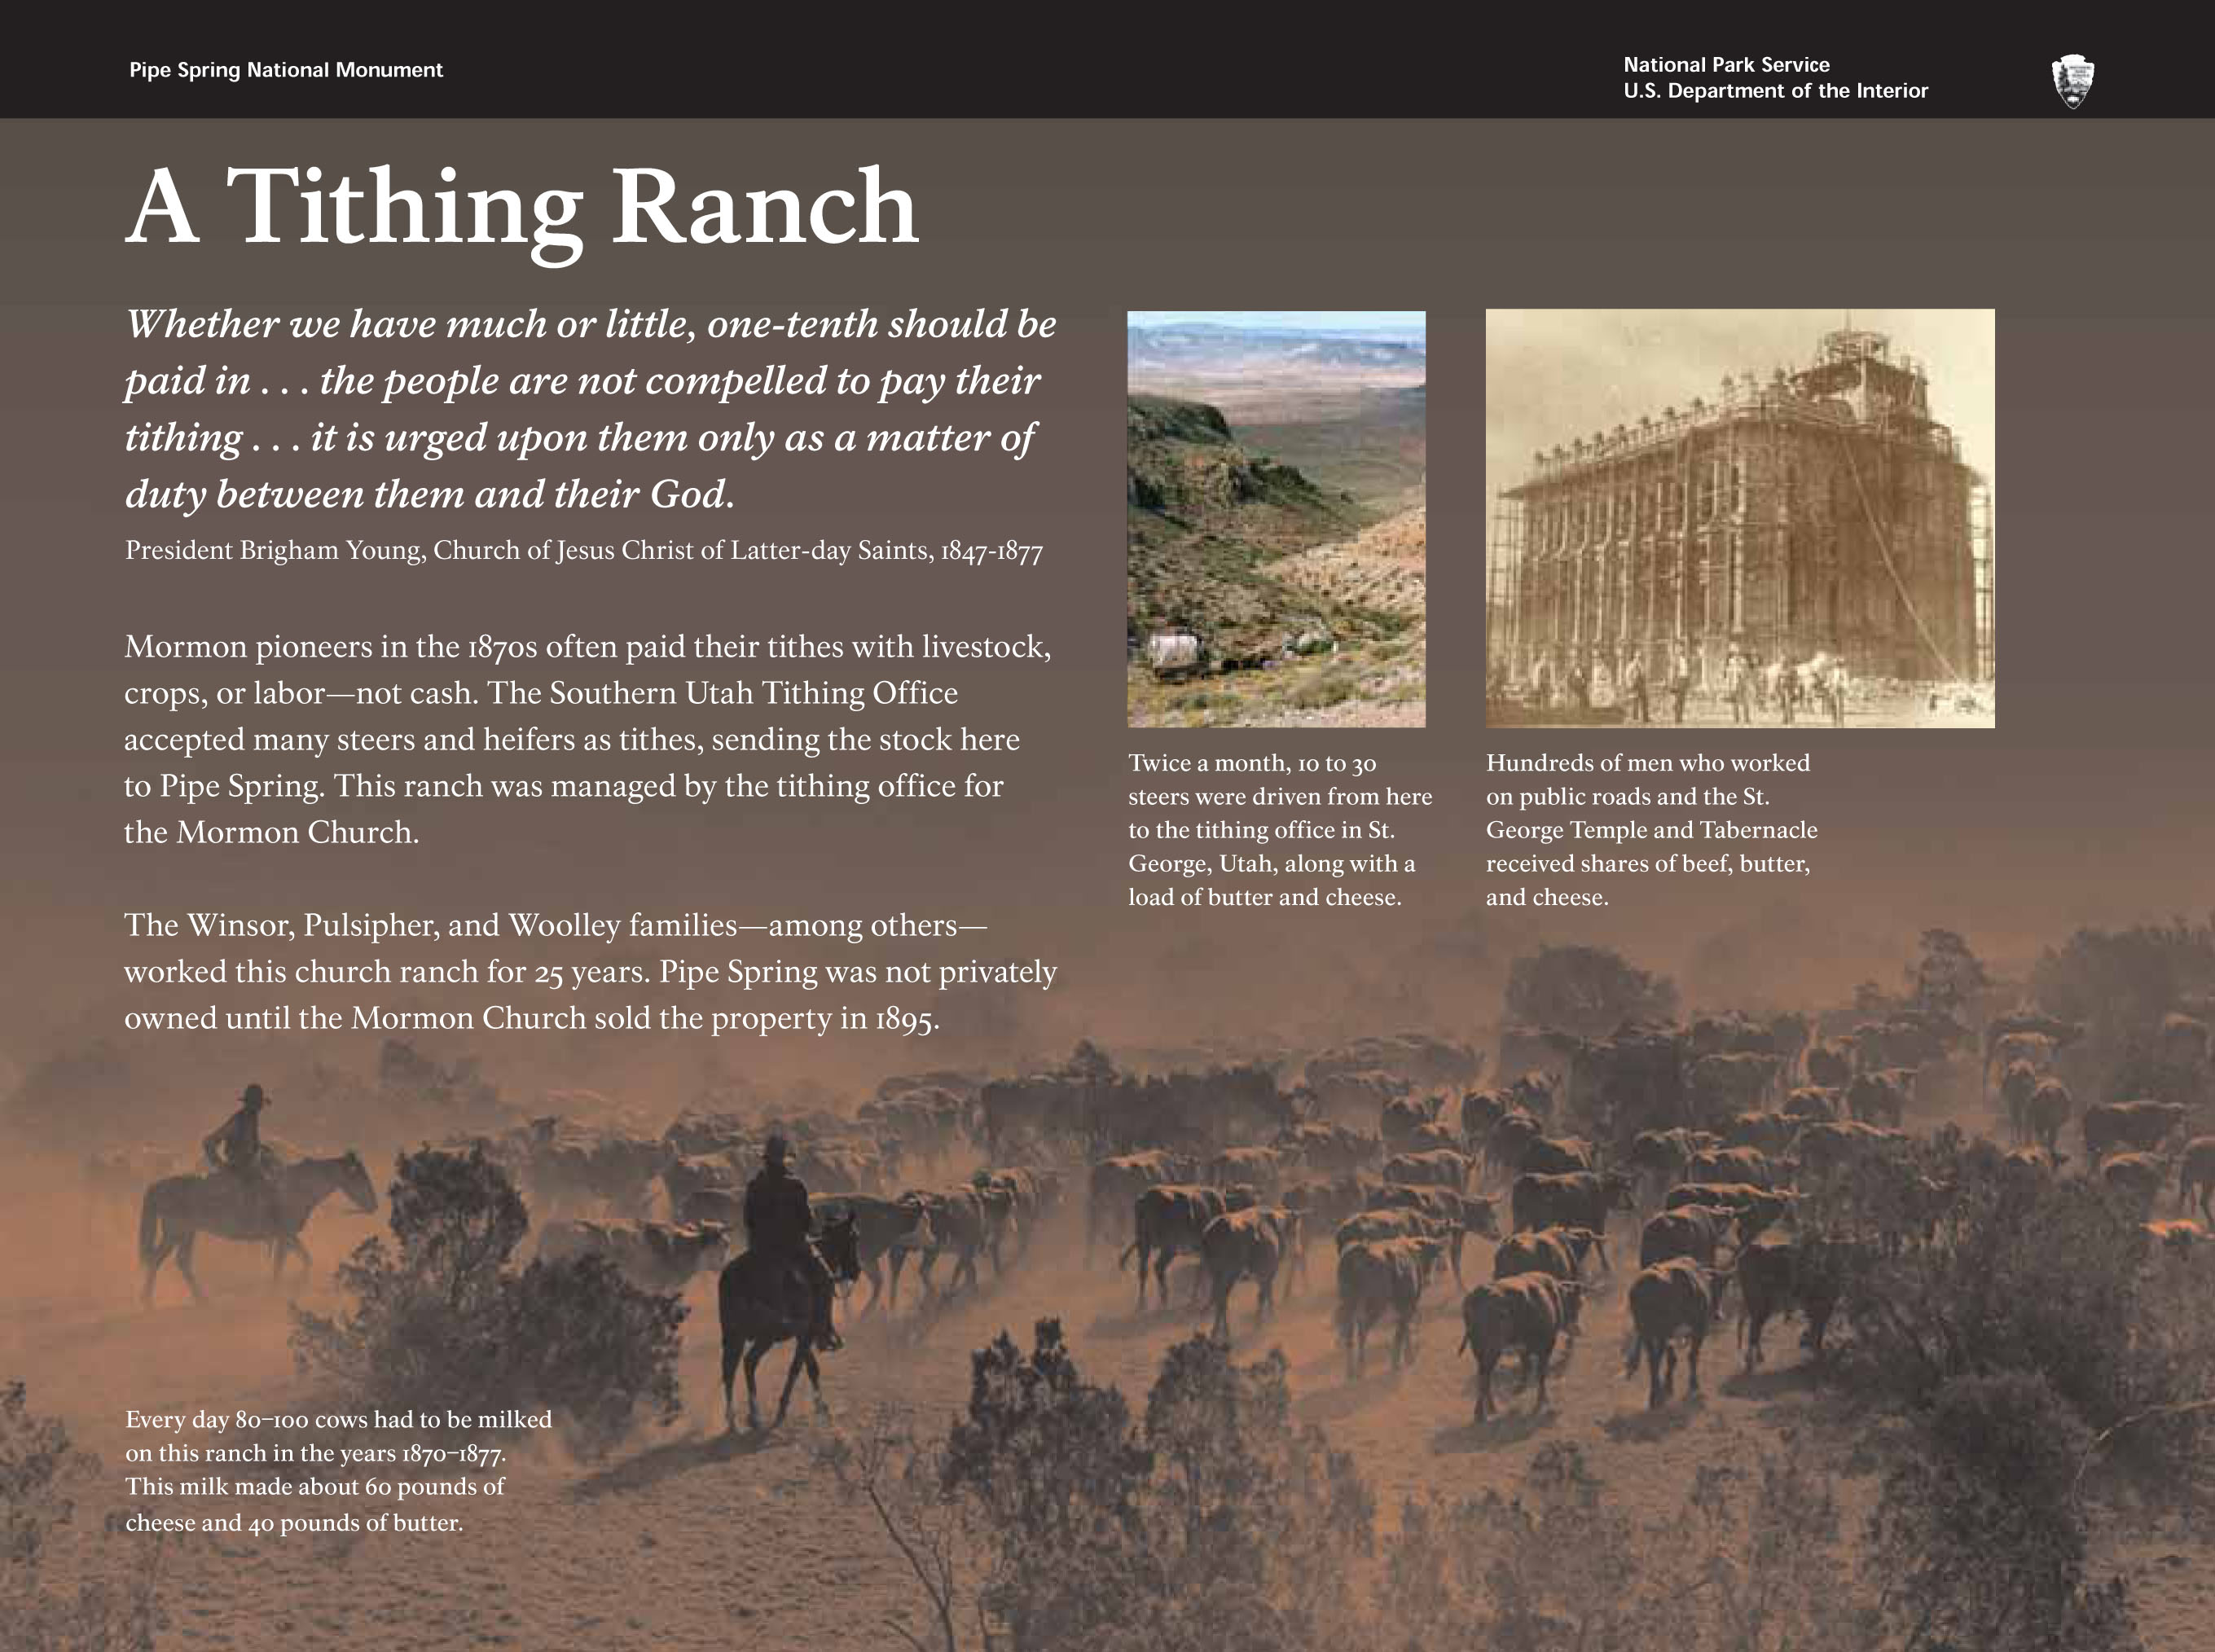 A Tithing Ranch